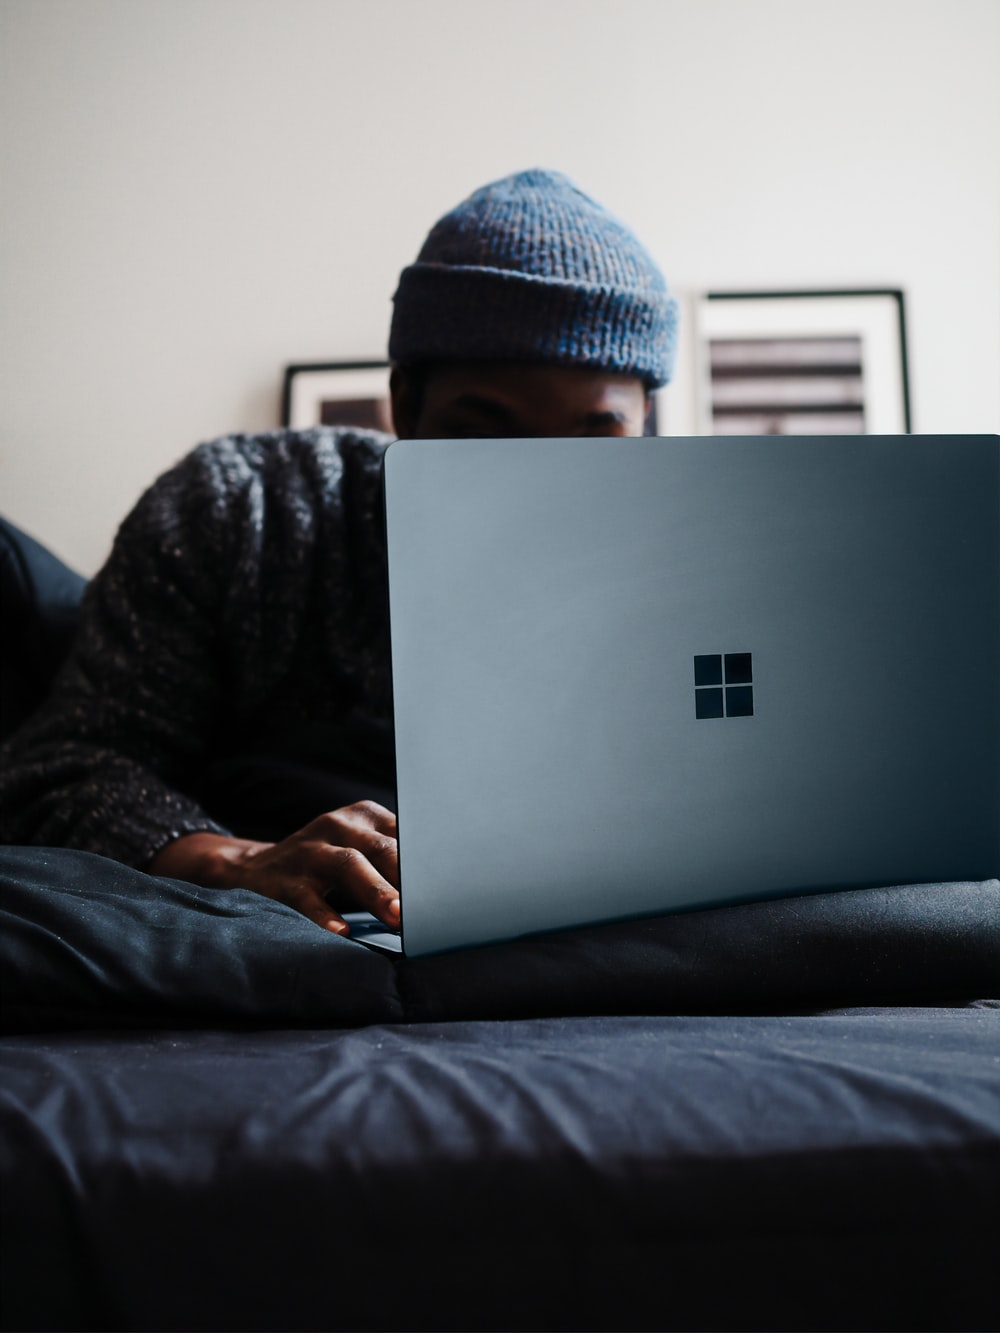 person in gray knit cap using microsoft surface computer in cobalt blue colour